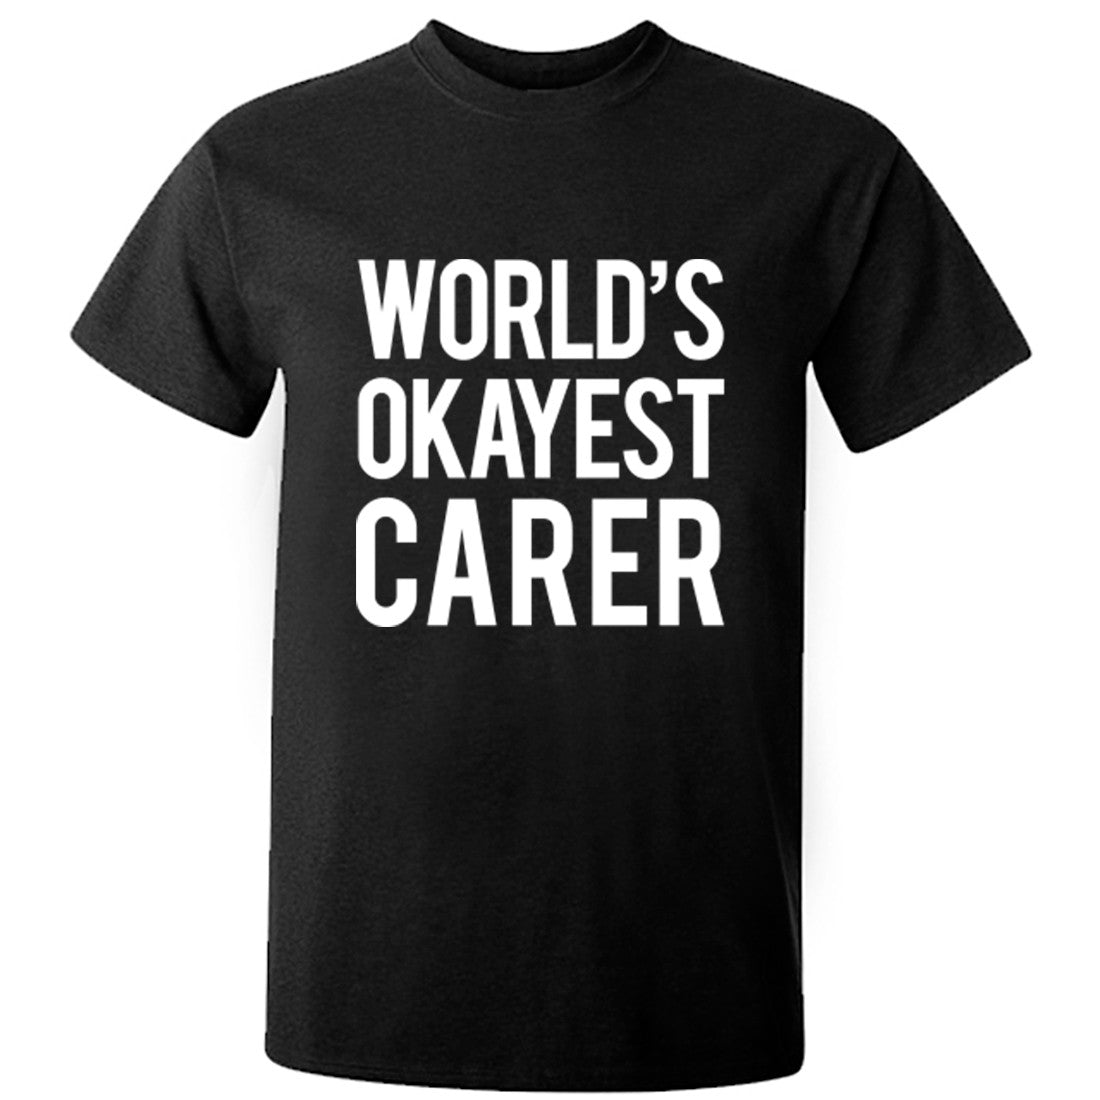 Worlds Okayest Carer Unisex Fit T-Shirt K0486 - Illustrated Identity Ltd.